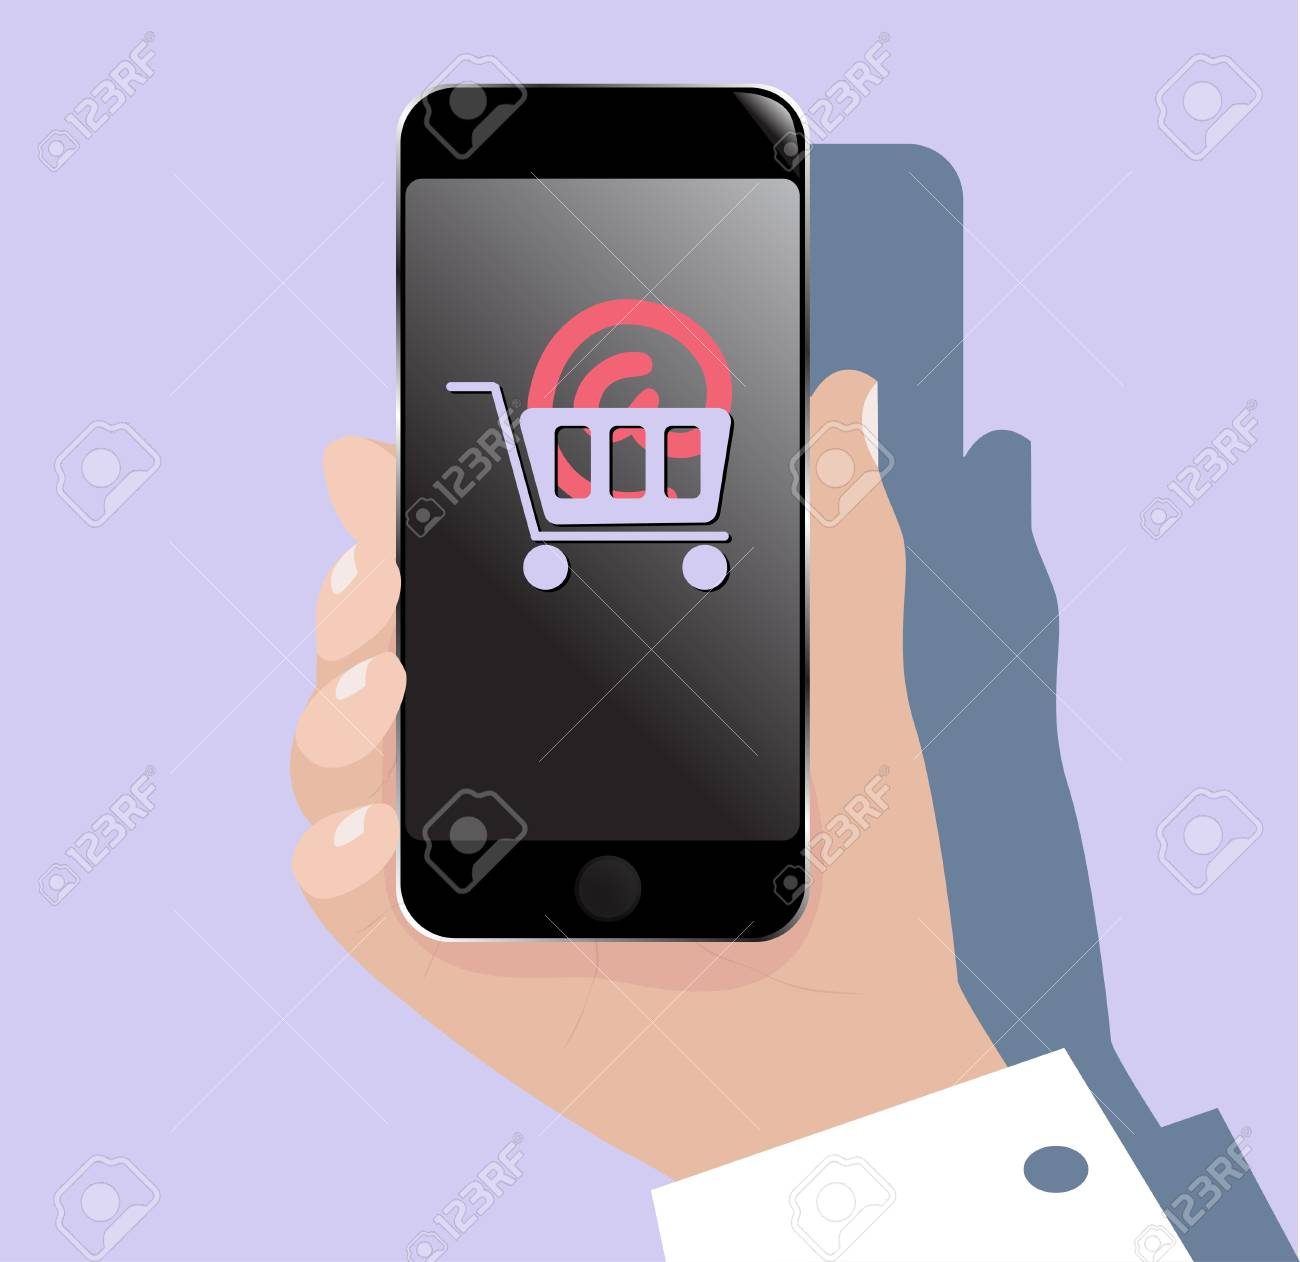 dfc35b9d3b0 Hand with mobile phone (smartphone). Web flat icon with online shopping  sign on